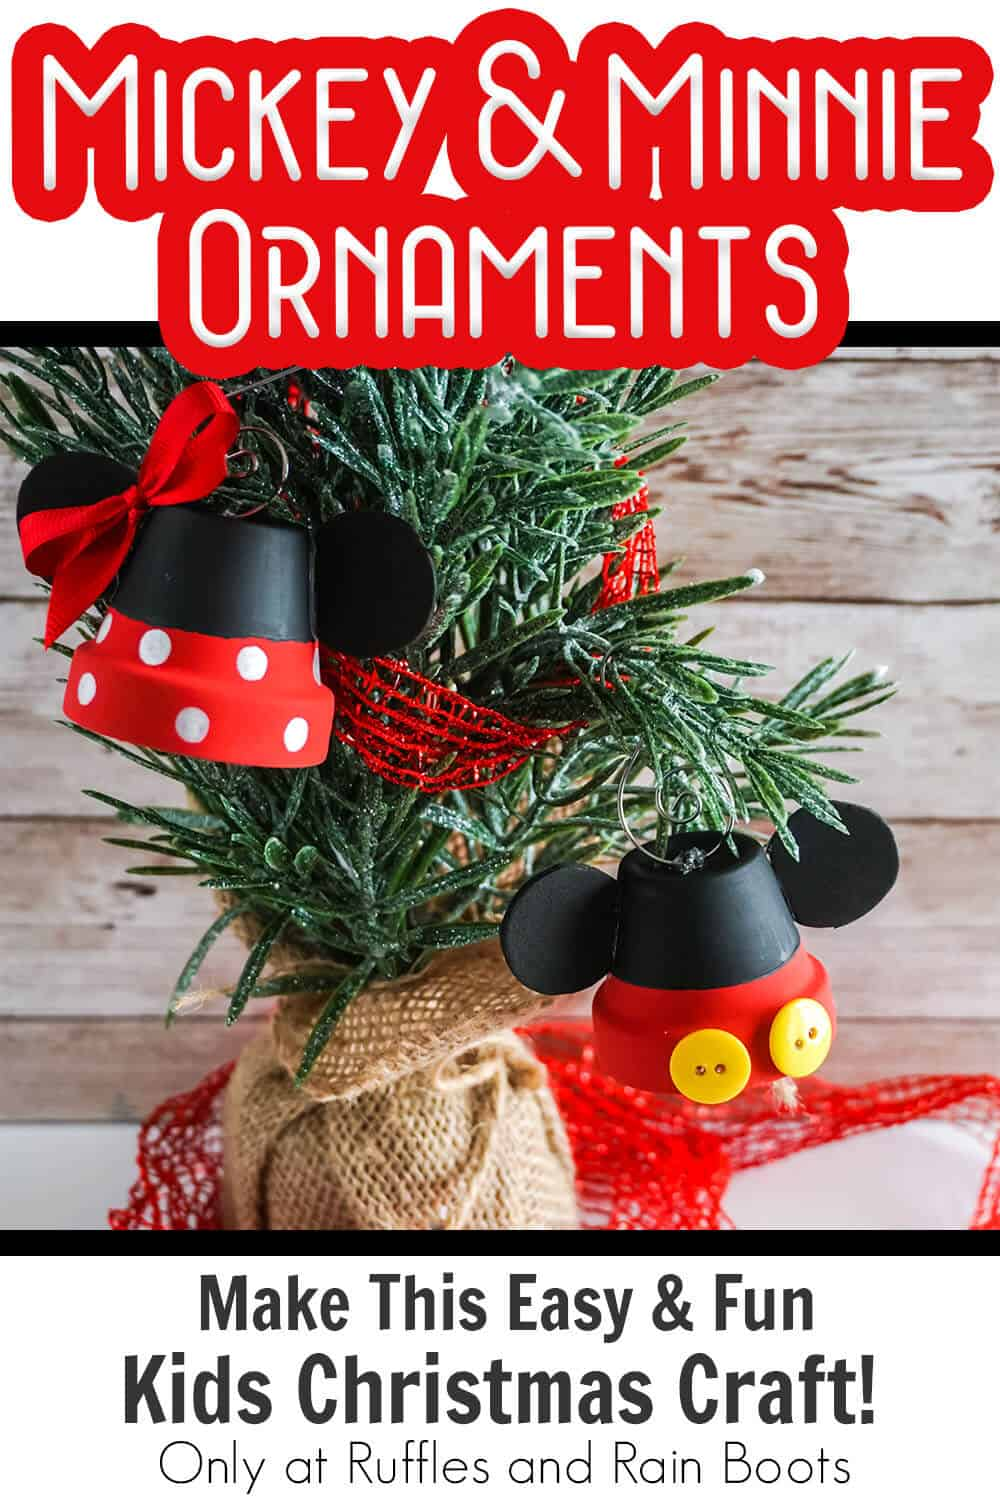 handmade christmas ornament set mickey and minnie with text which reads mickey & minnie ornaments make this easy & fun kids christmas craft!